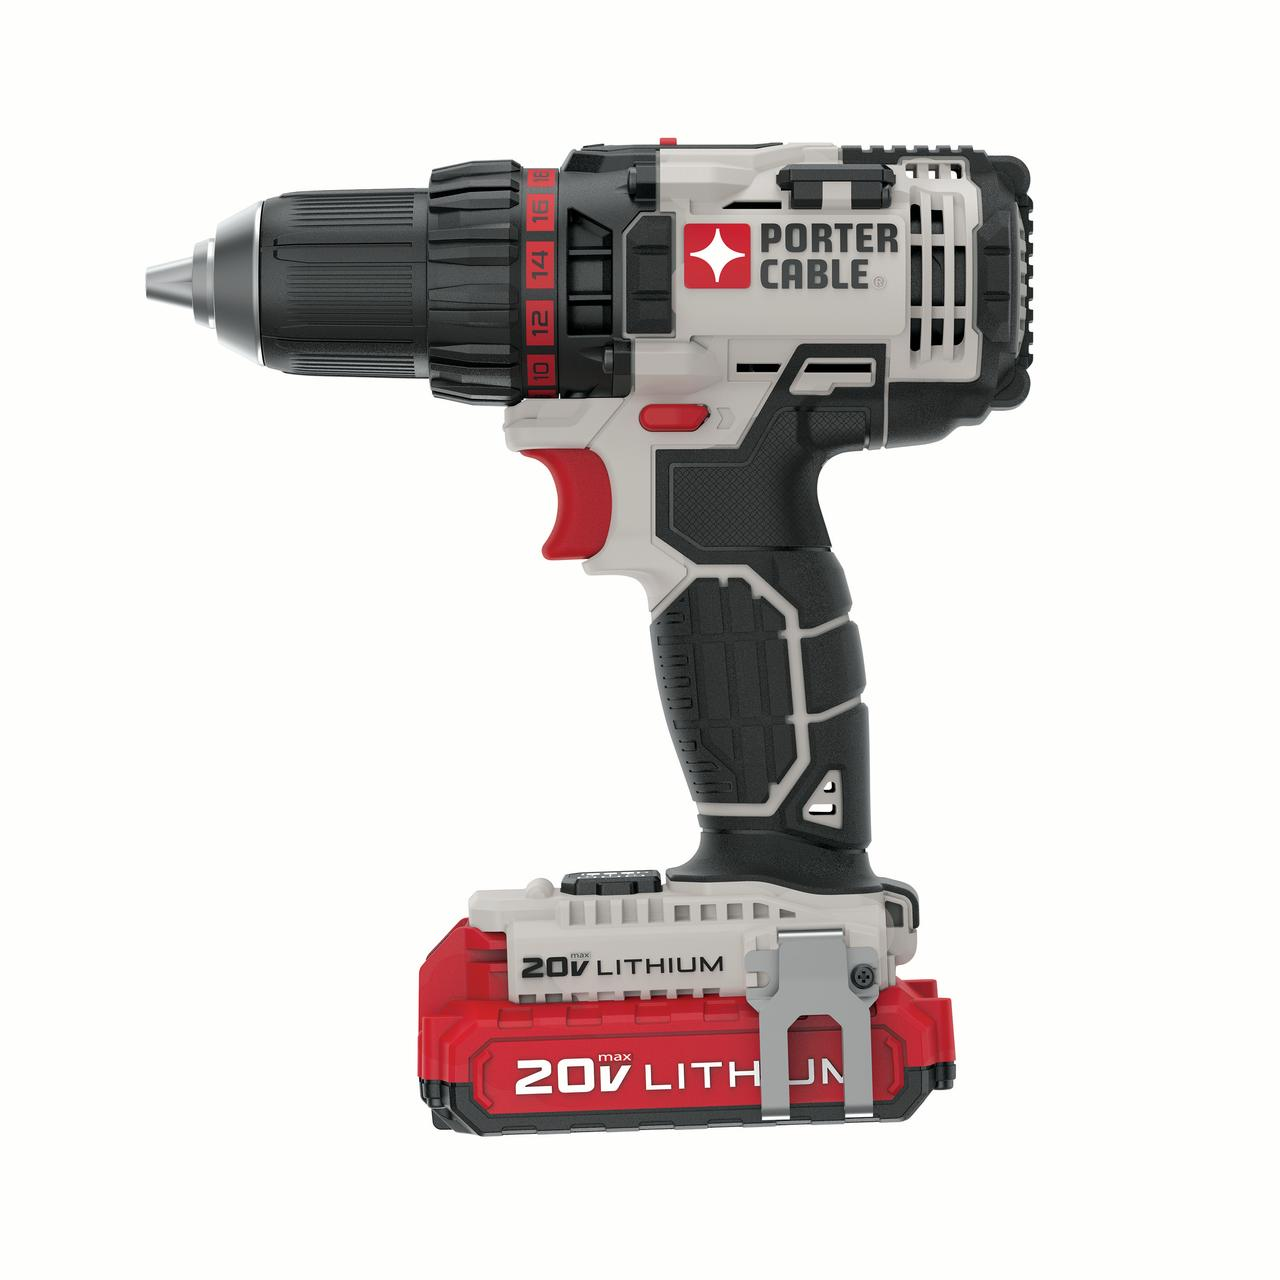 PORTER CABLE PCCK600LB 20V MAX Lithium-Ion 1/2-Inch Cordless Drill with 2 - 1.5Ah Batteries